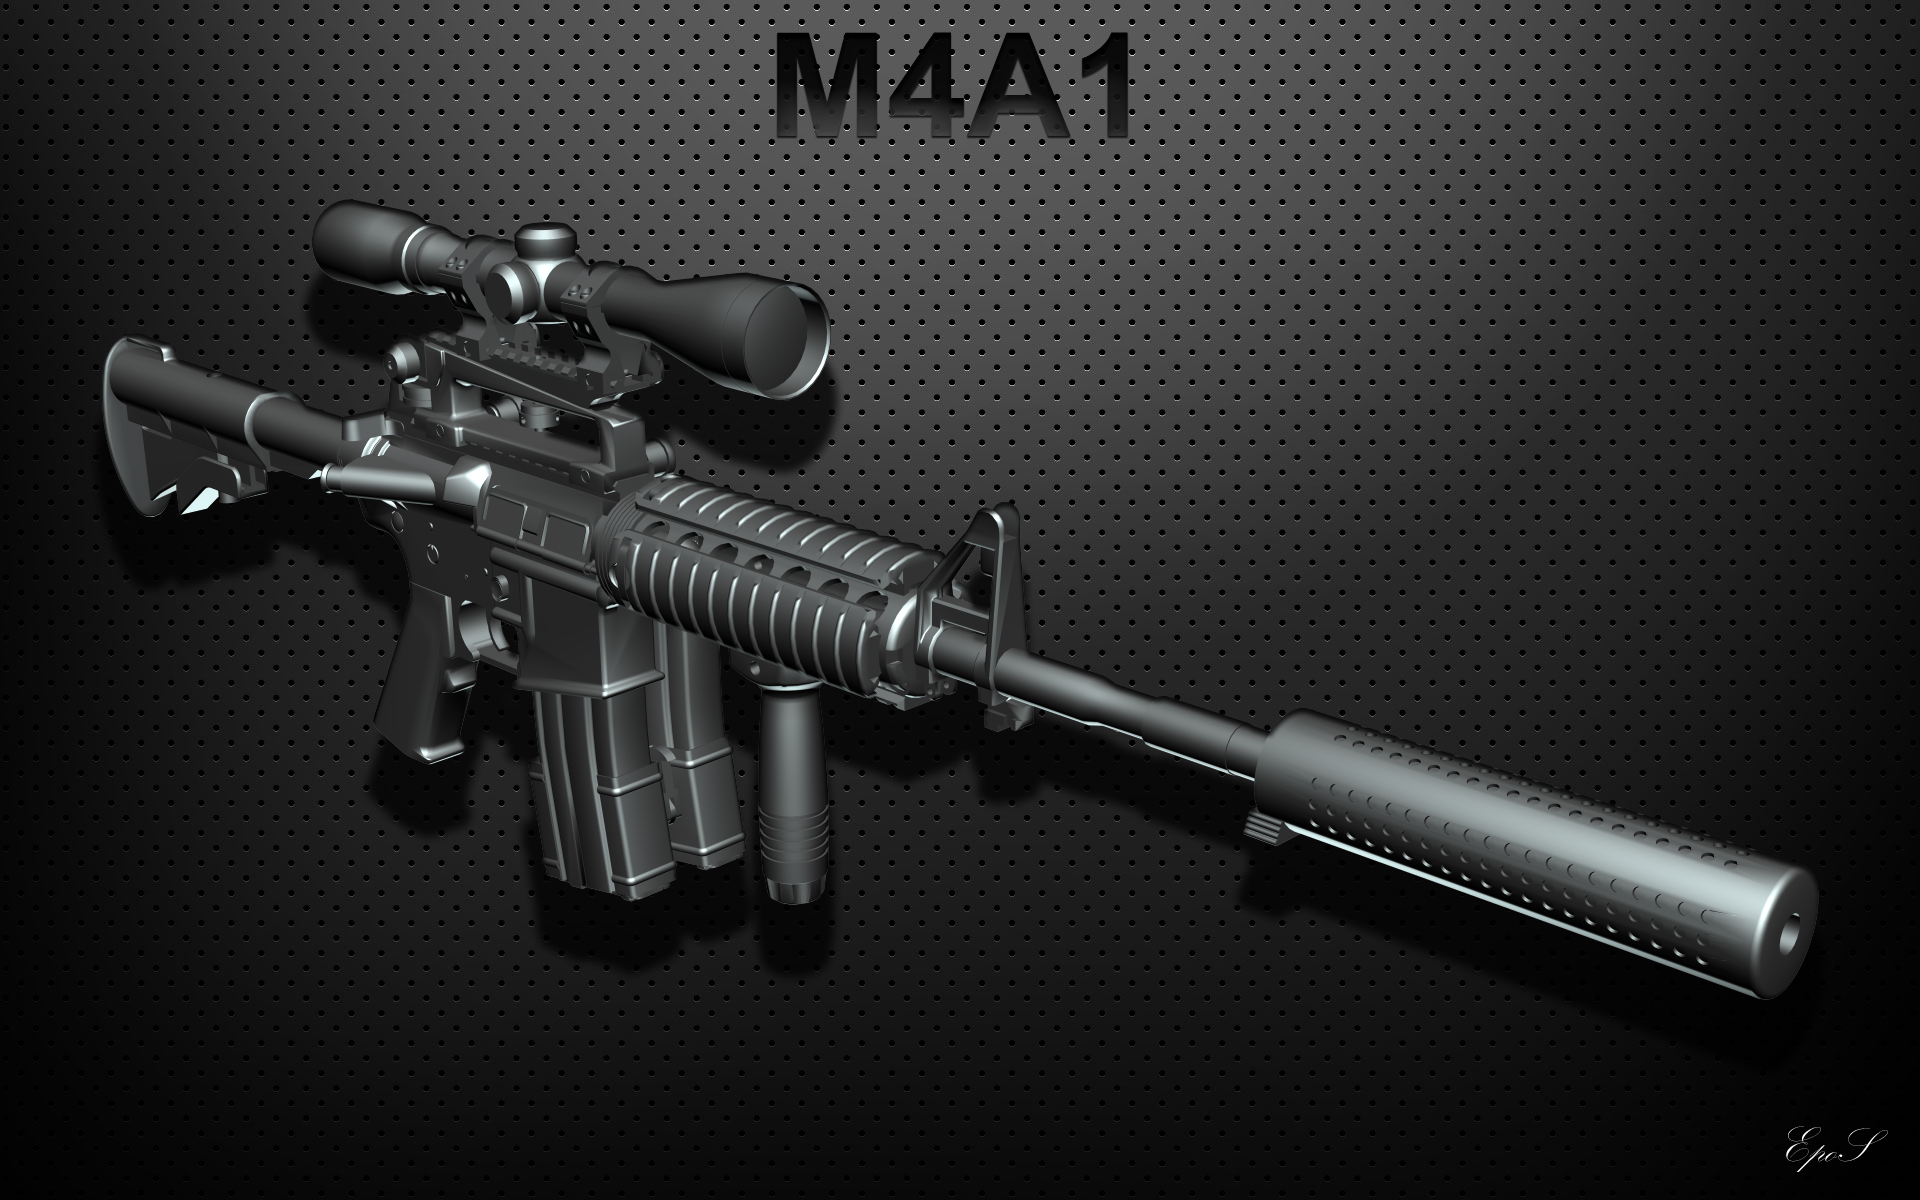 M4a1 Wallpaper | www.pixshark.com - Images Galleries With ...